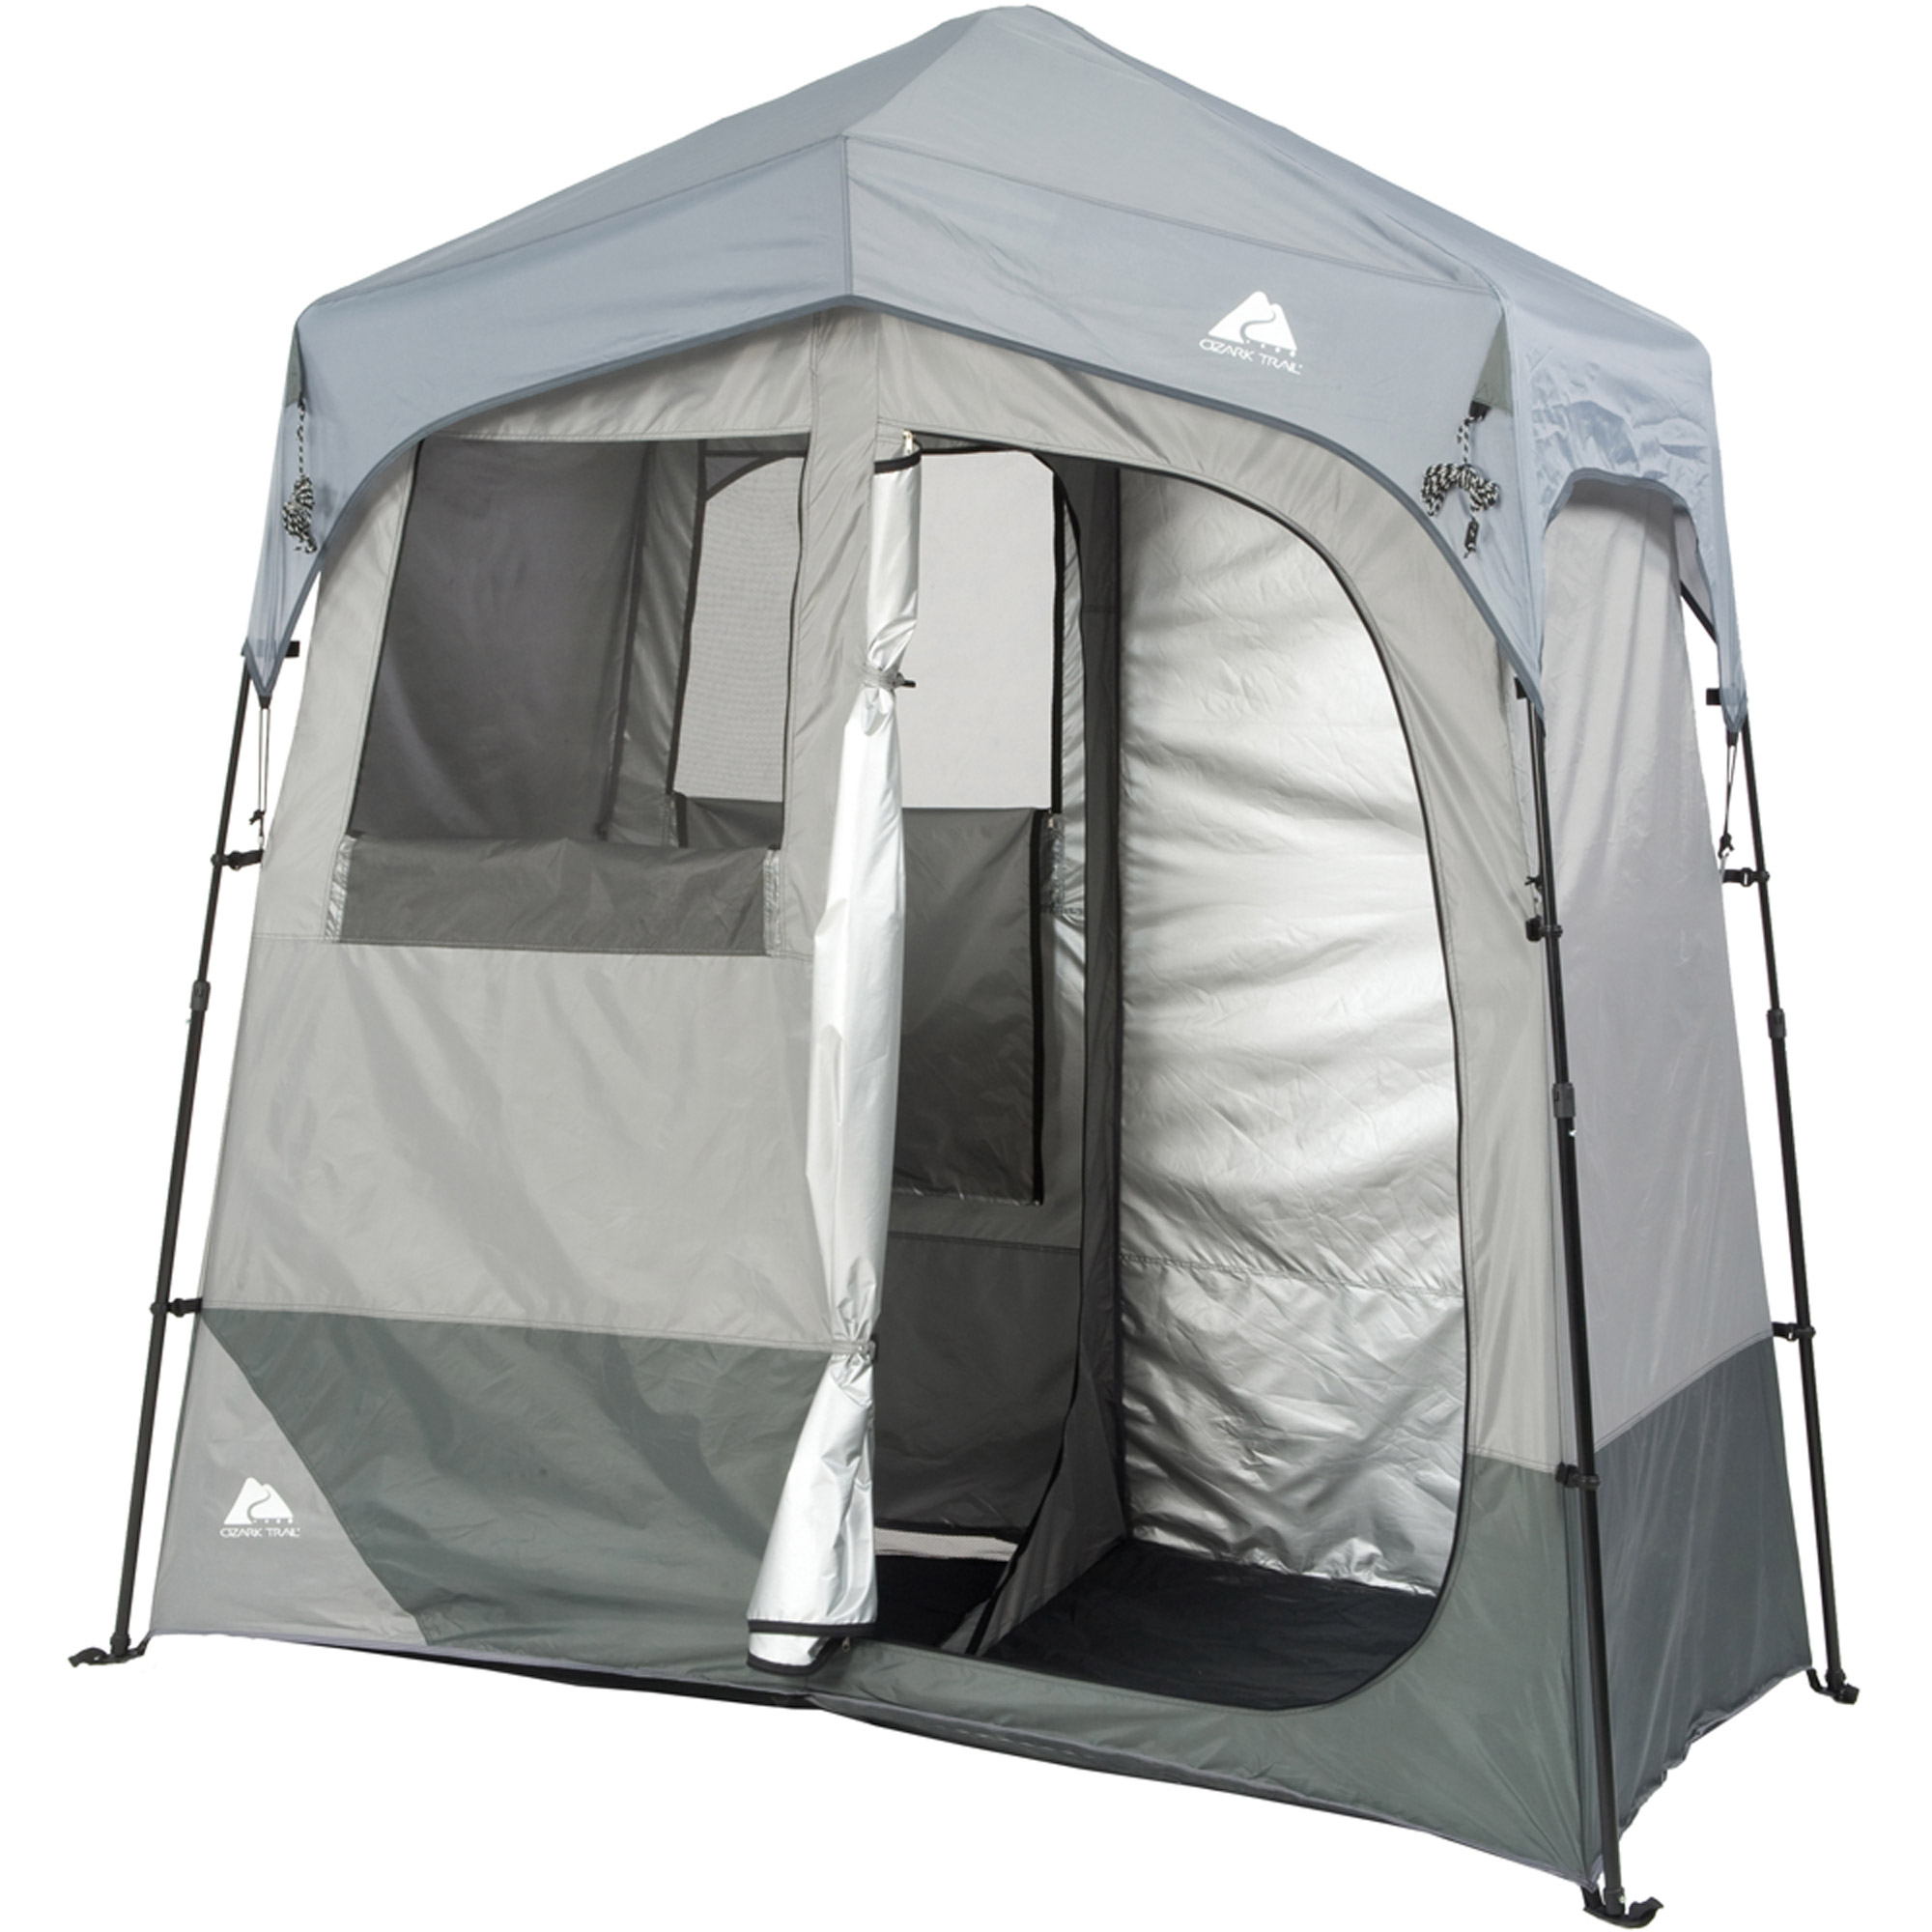 Ozark Trail 2-Room Instant Shower/Utility Shelter - Walmart.com